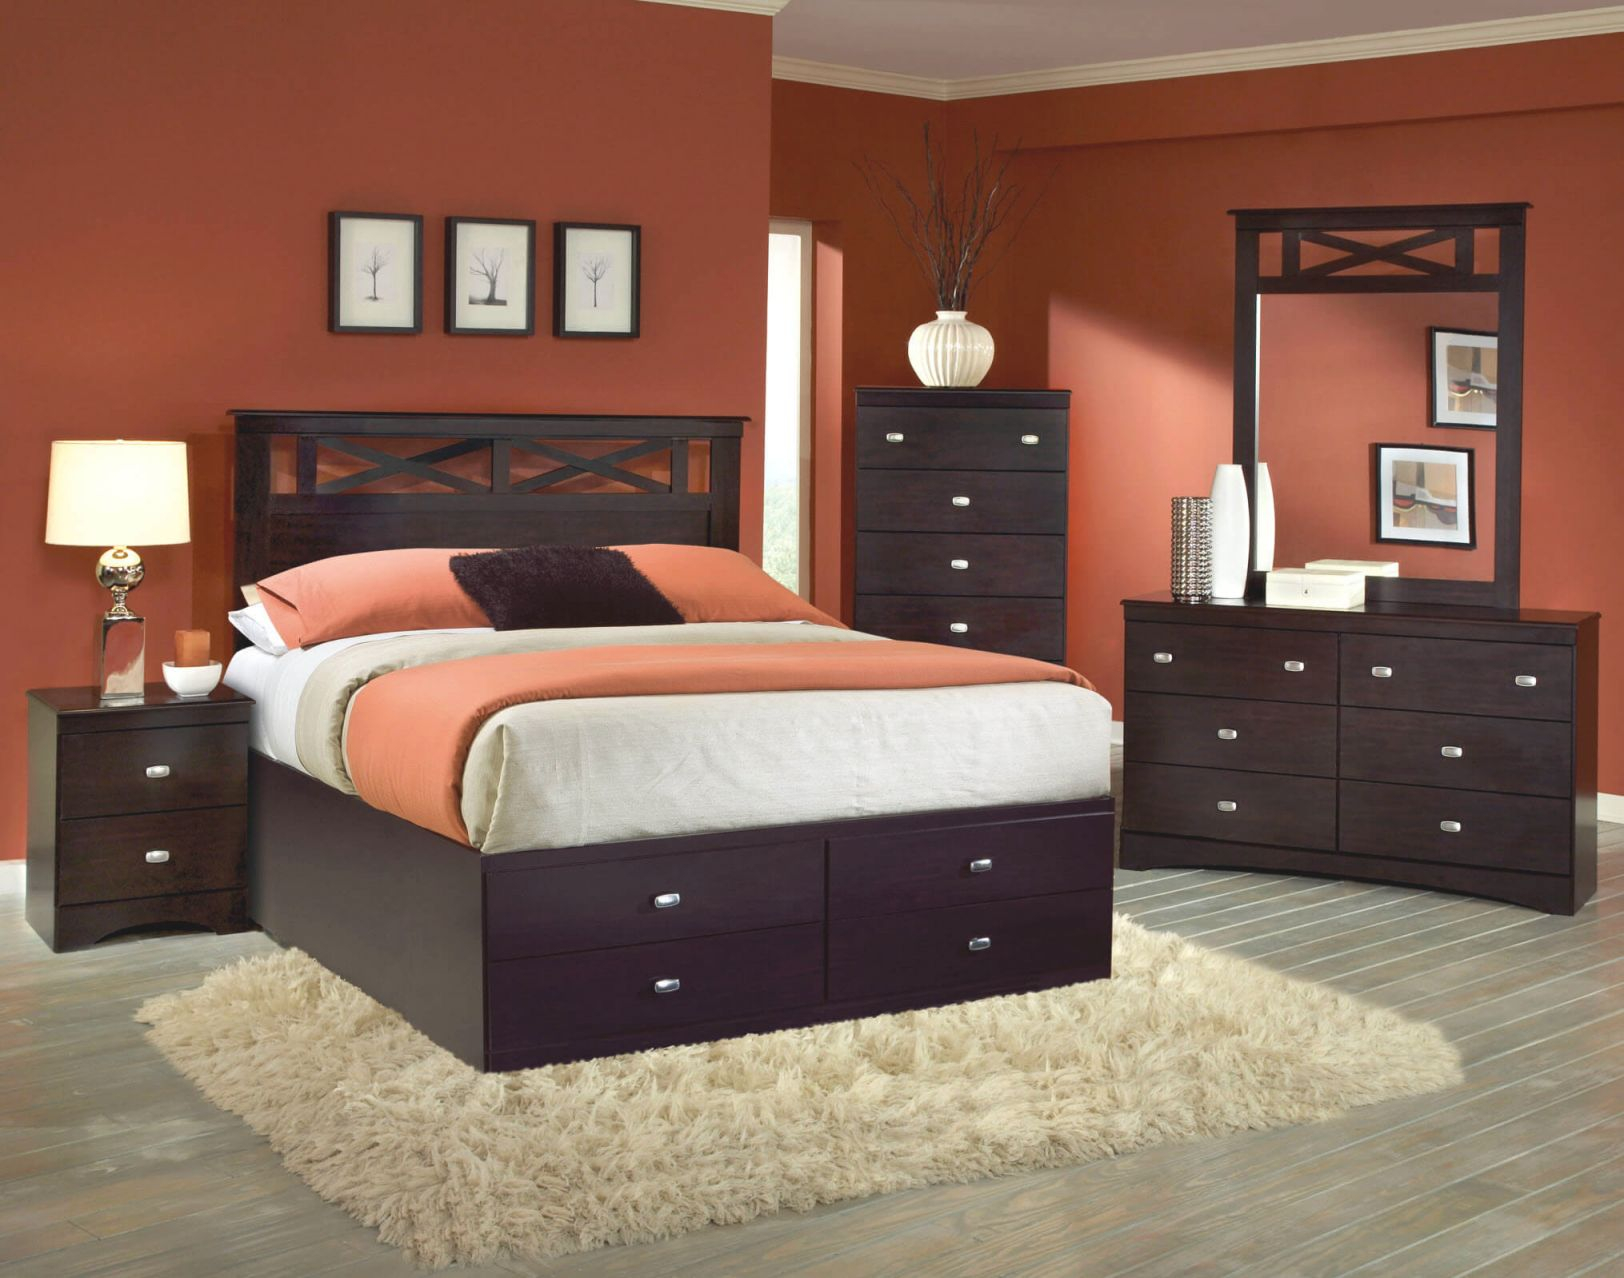 230 Kith Tyler 5 Pc Set With Queen Storage Bed with Cheap Queen Bedroom Furniture Sets